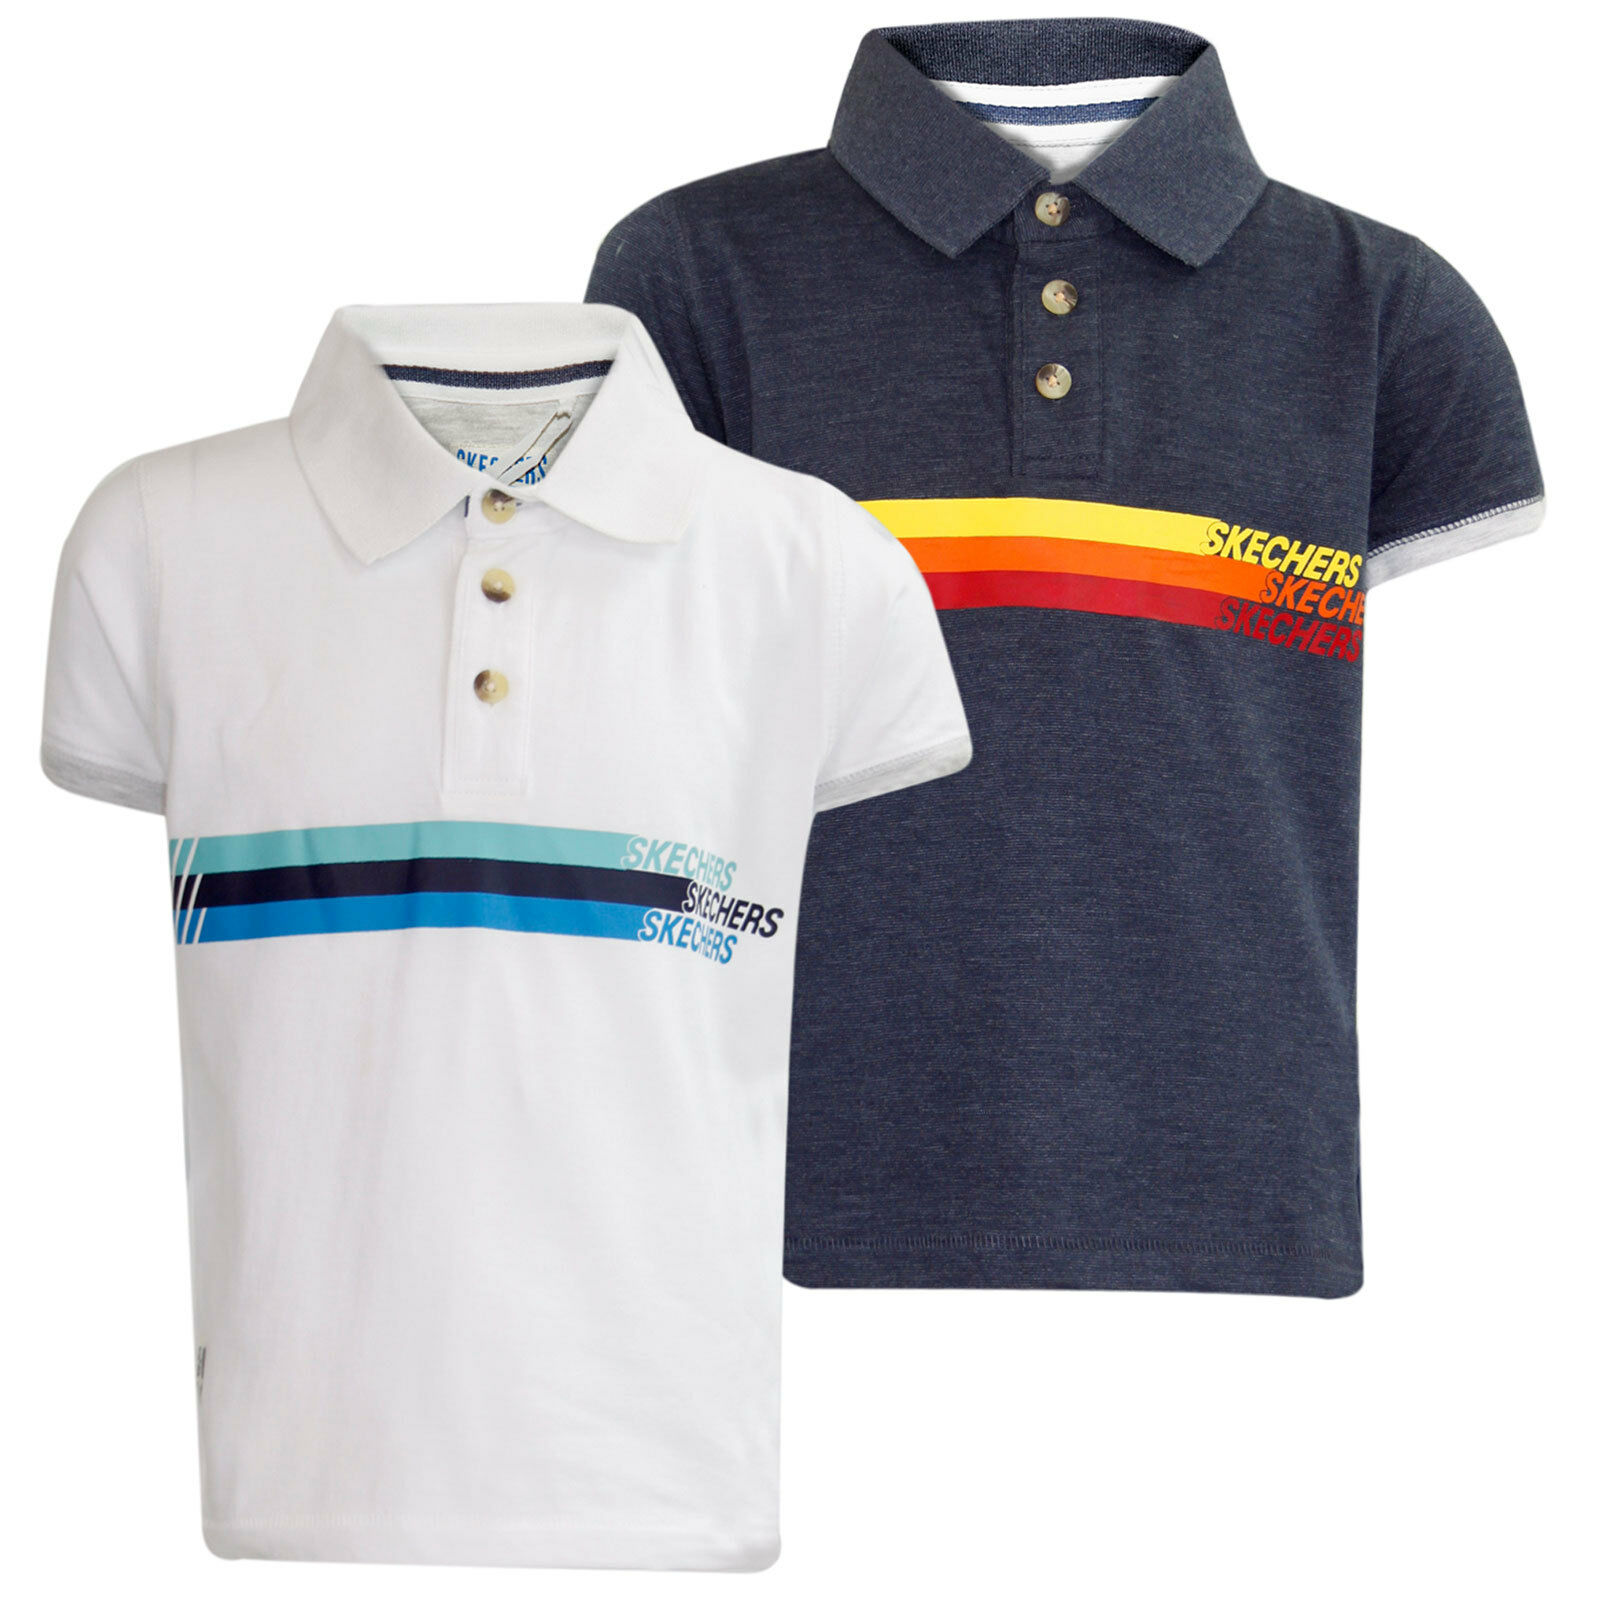 Boys Polo T-Shirt Brand Printed Short